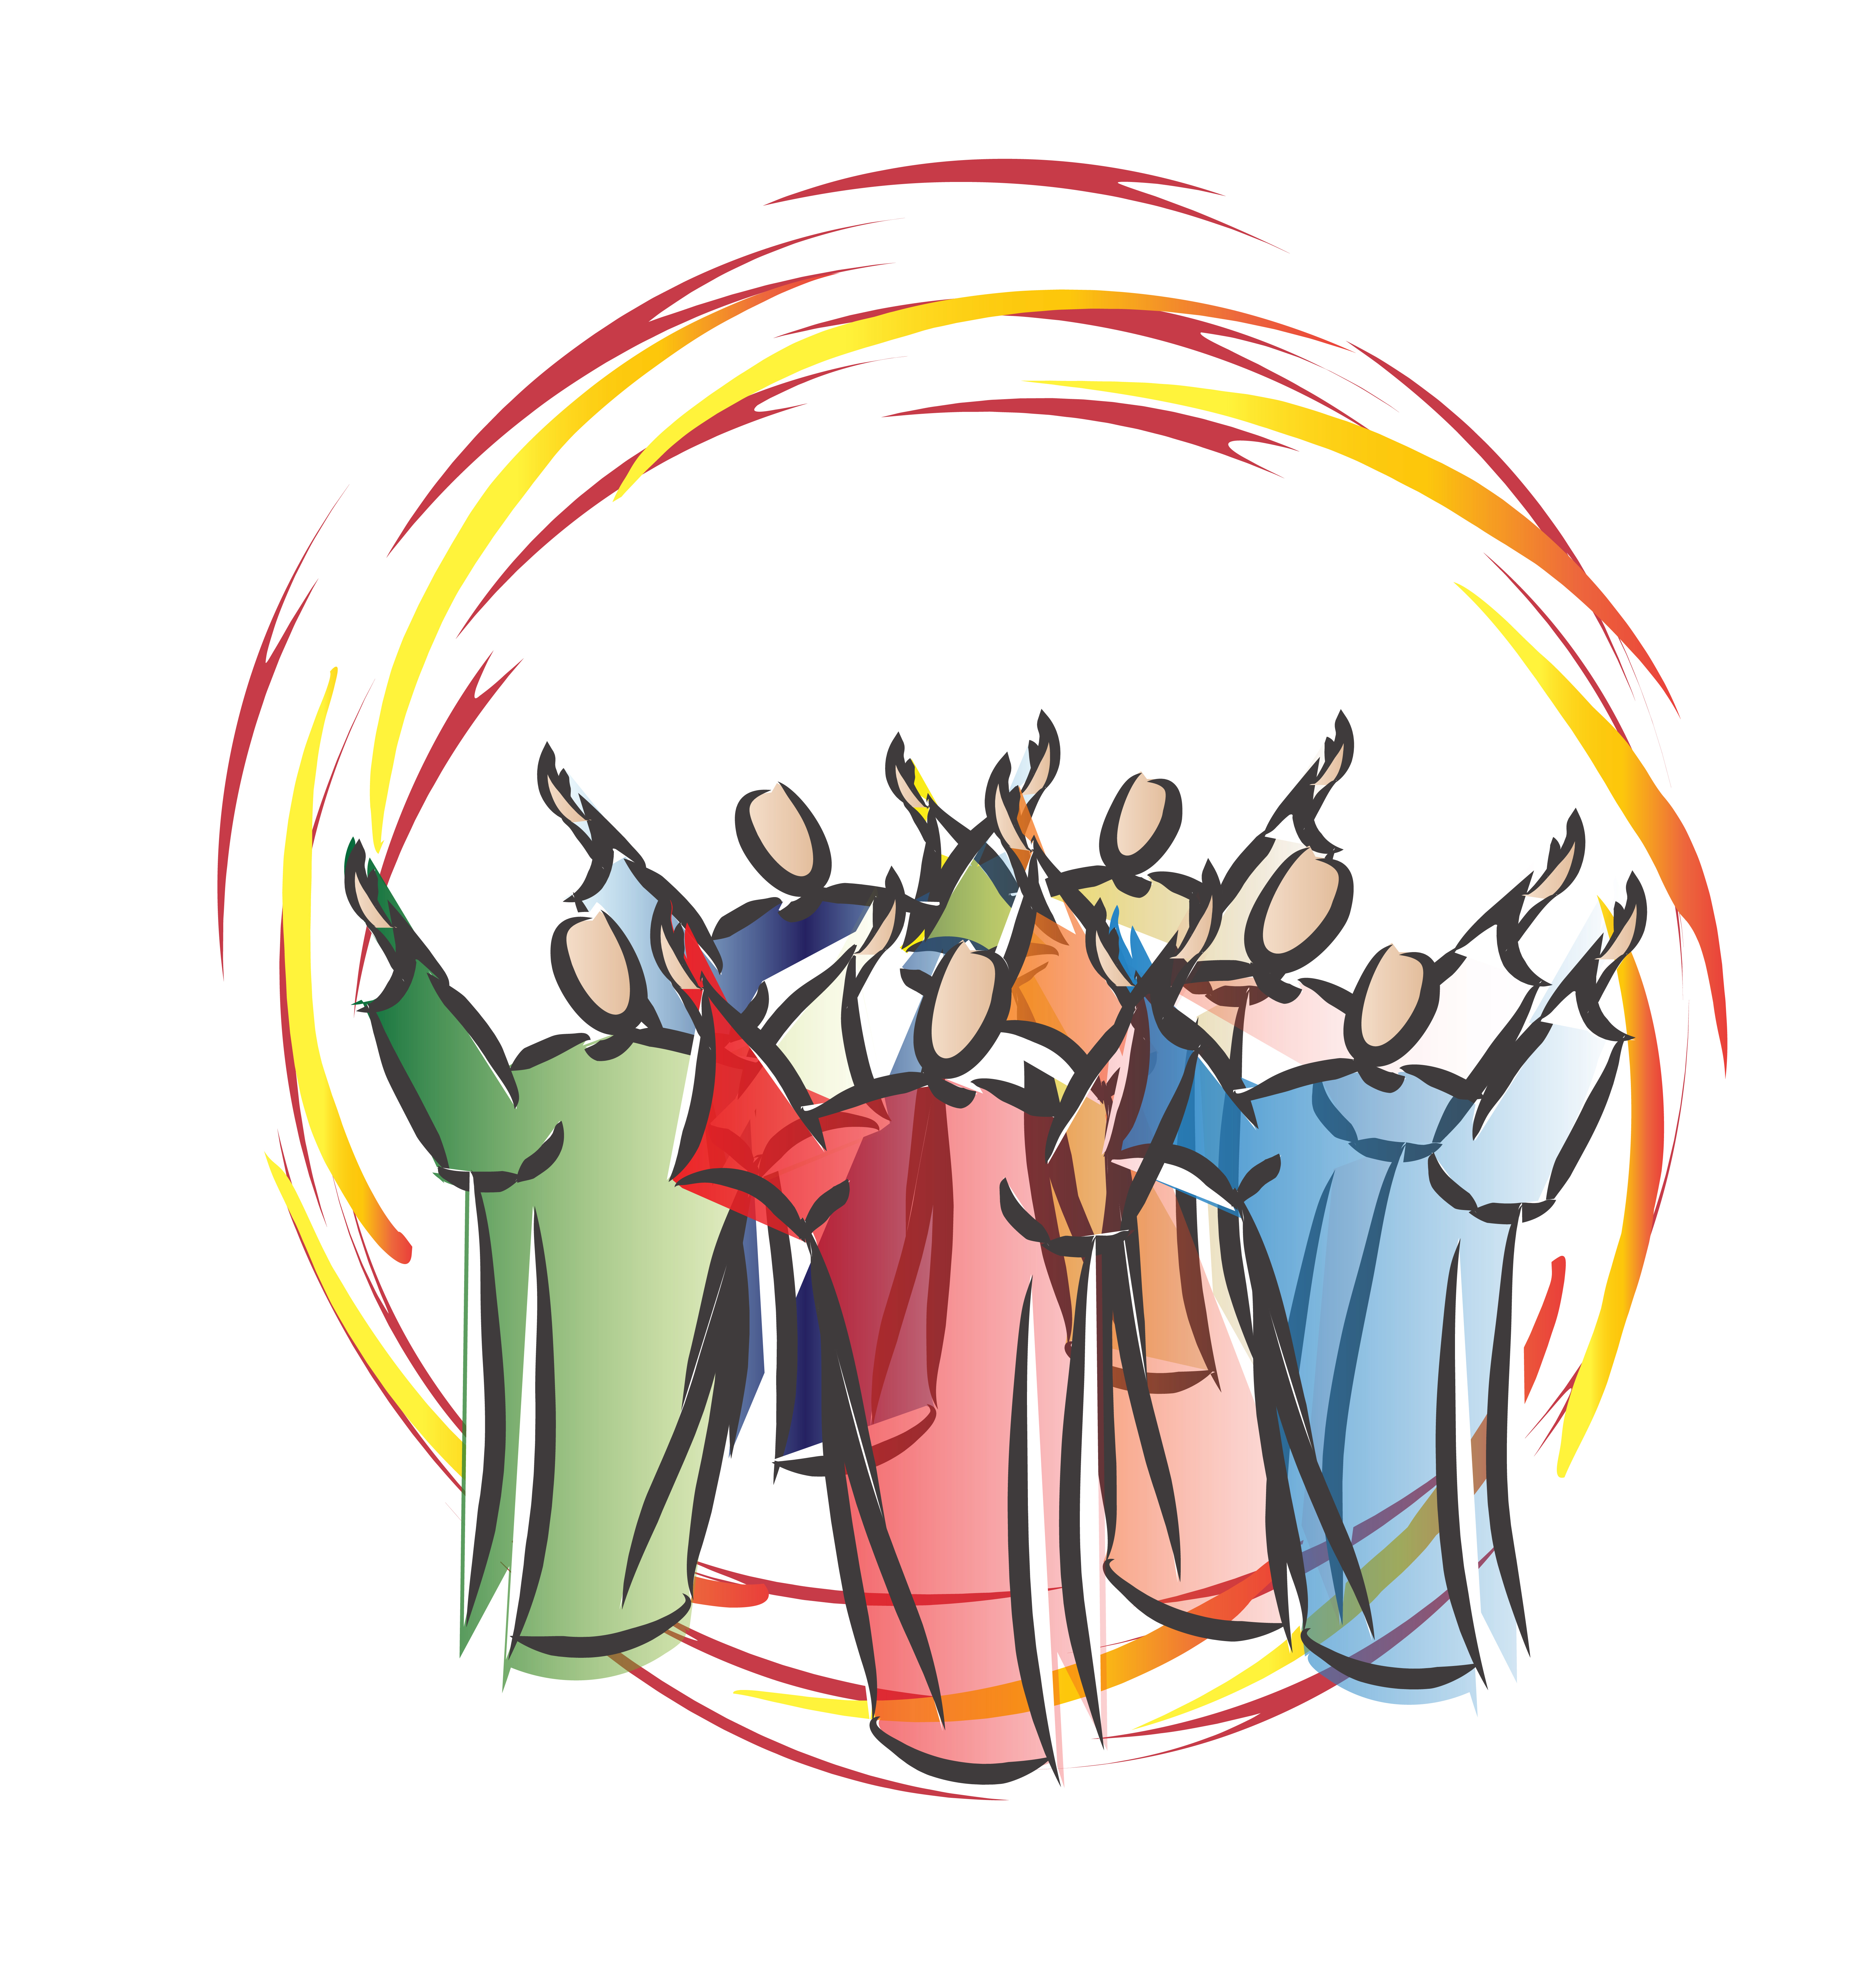 Pentecost,-,Descent,Of,The,Holy,Spirit,In,Form,Of